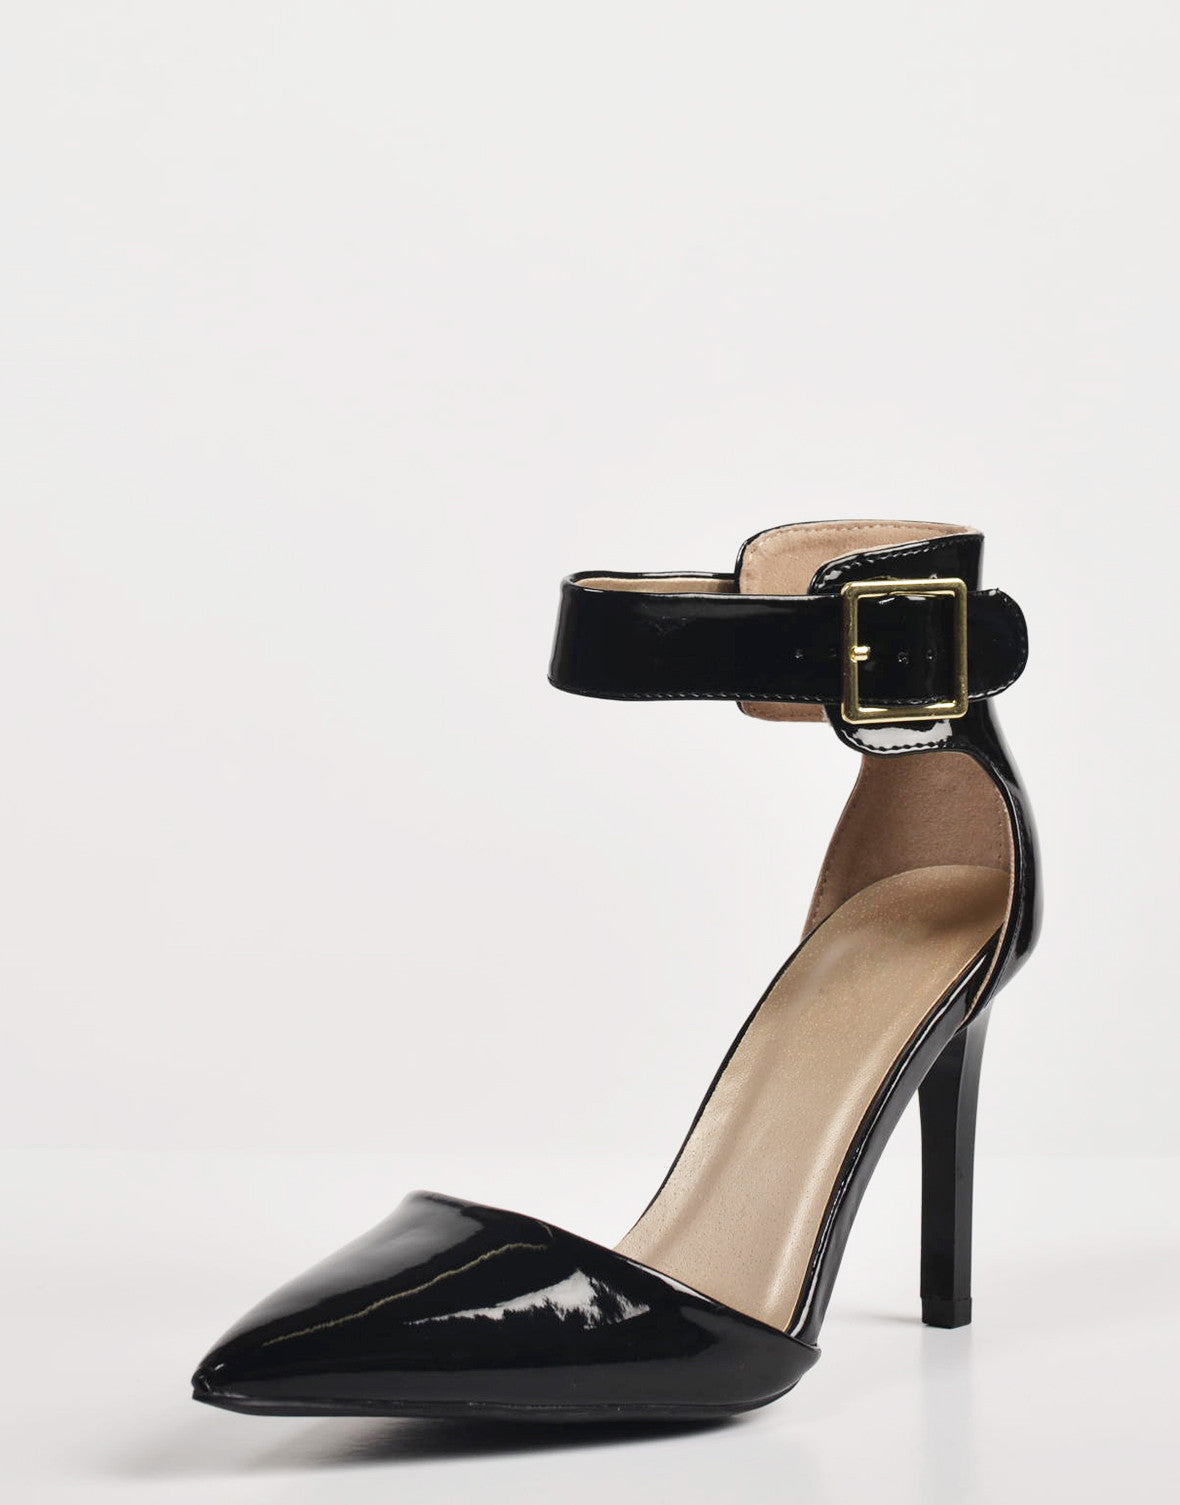 Detail of Patent Pointy Toe Ankle Strapped Pumps